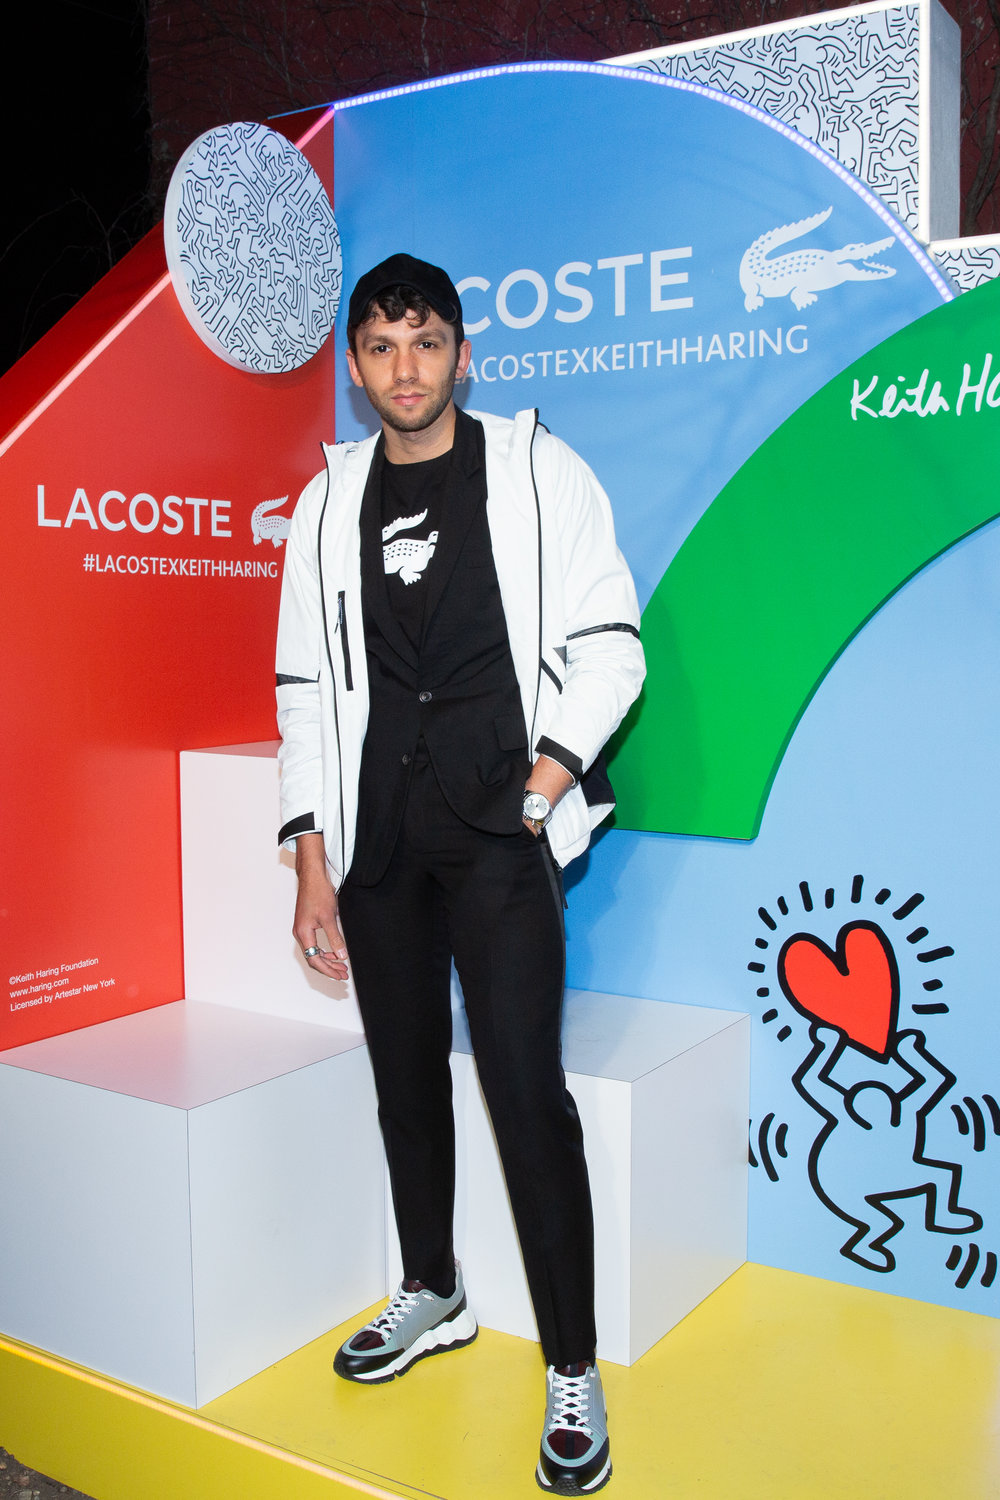 Talun Zeitoun attends The Lacoste x Keith Haring Global Launch Party at Pioneer Works on Tuesday, March 26th, 2019. Photographed by Max Lakner/BFA.